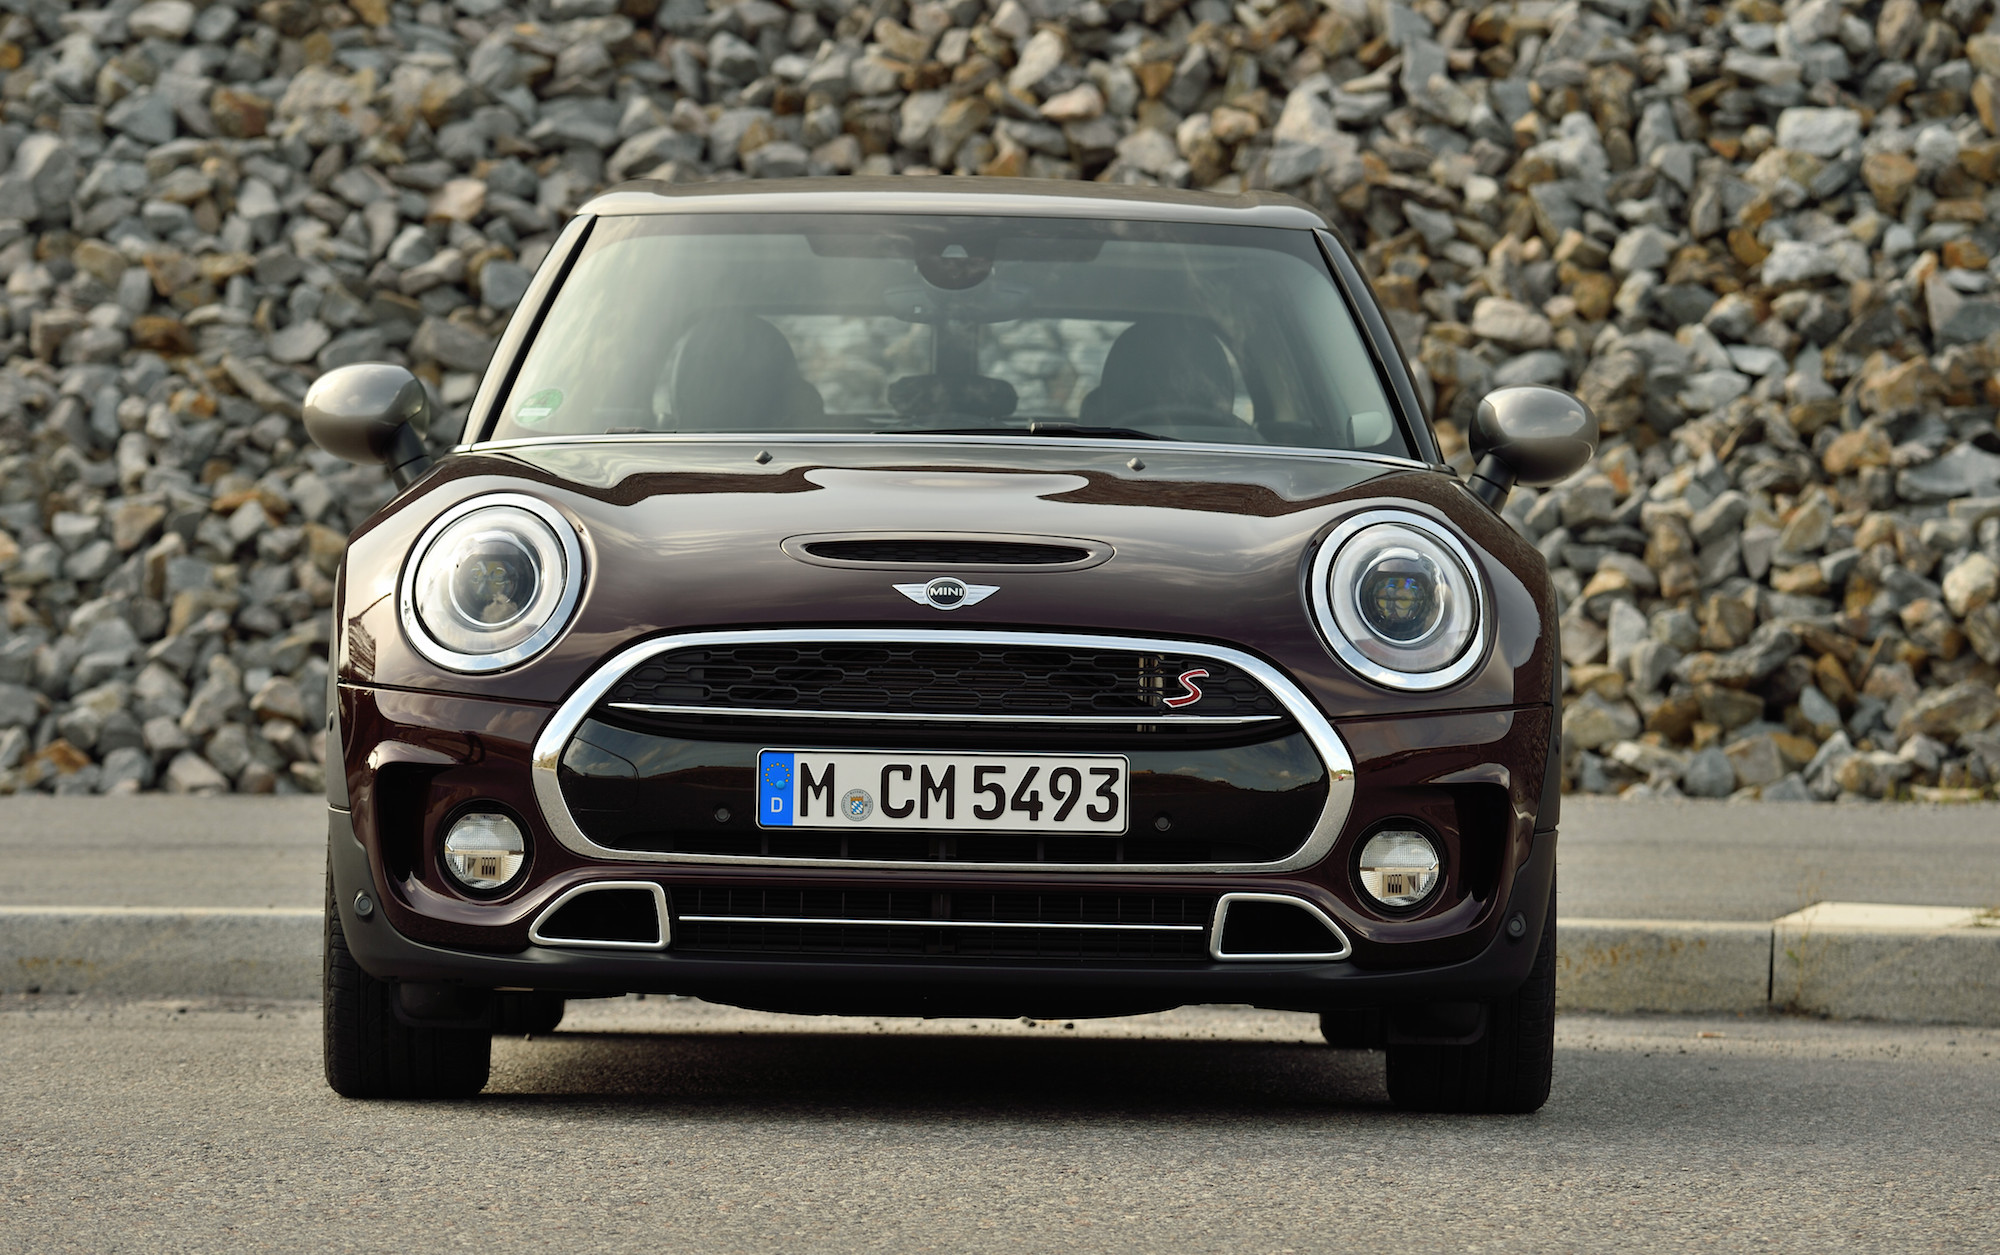 2016 mini cooper s clubman front end 6934 cars performance reviews and test drive. Black Bedroom Furniture Sets. Home Design Ideas